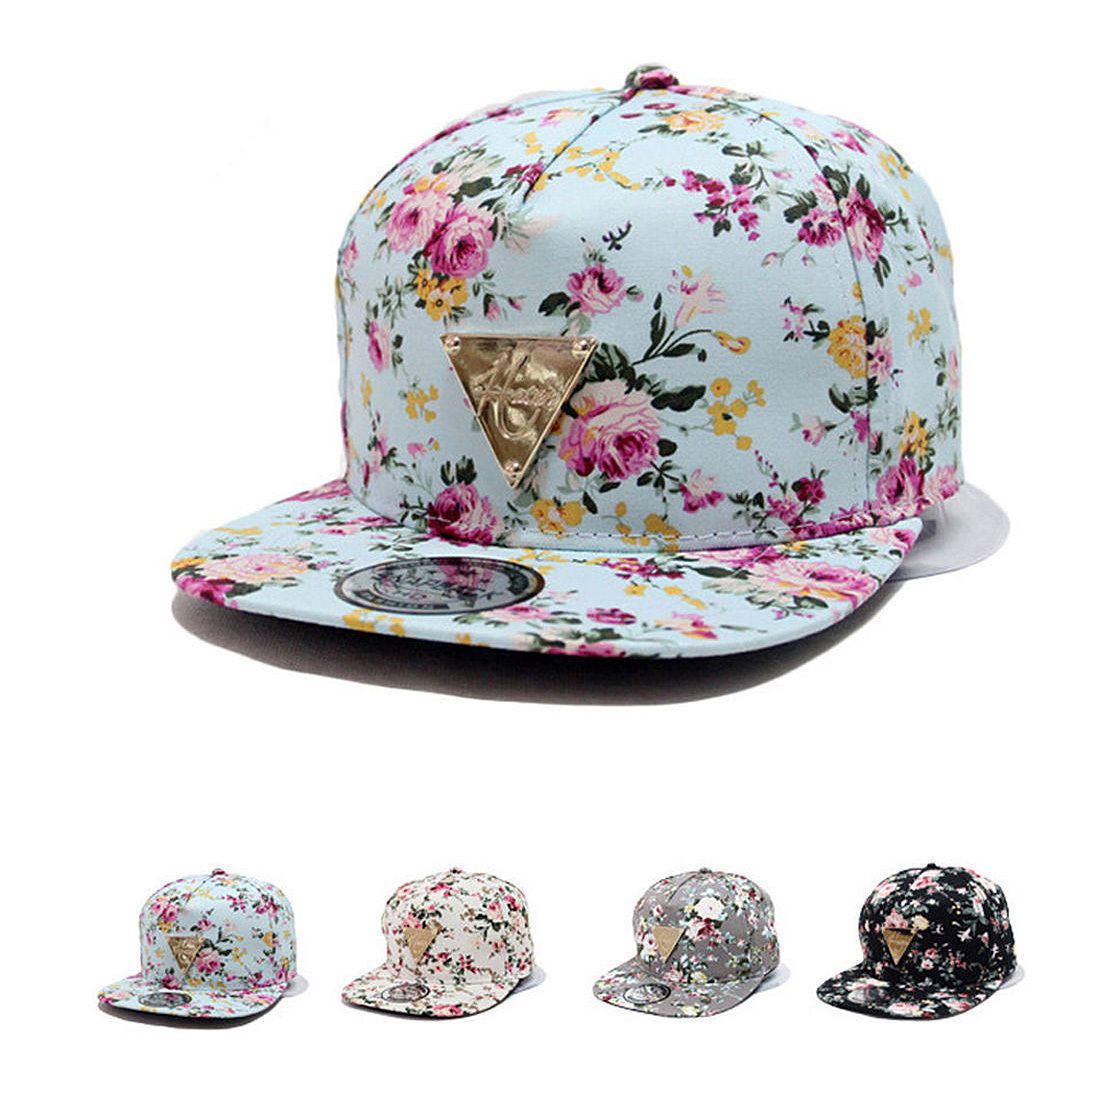 Floral Flower Hip Hop Snapback Hats Flat Adjustable Baseball Cap 2017 new fashion brand breathable v ring black snapback caps strapback baseball cap bboy hip hop hats for men women fitted hat